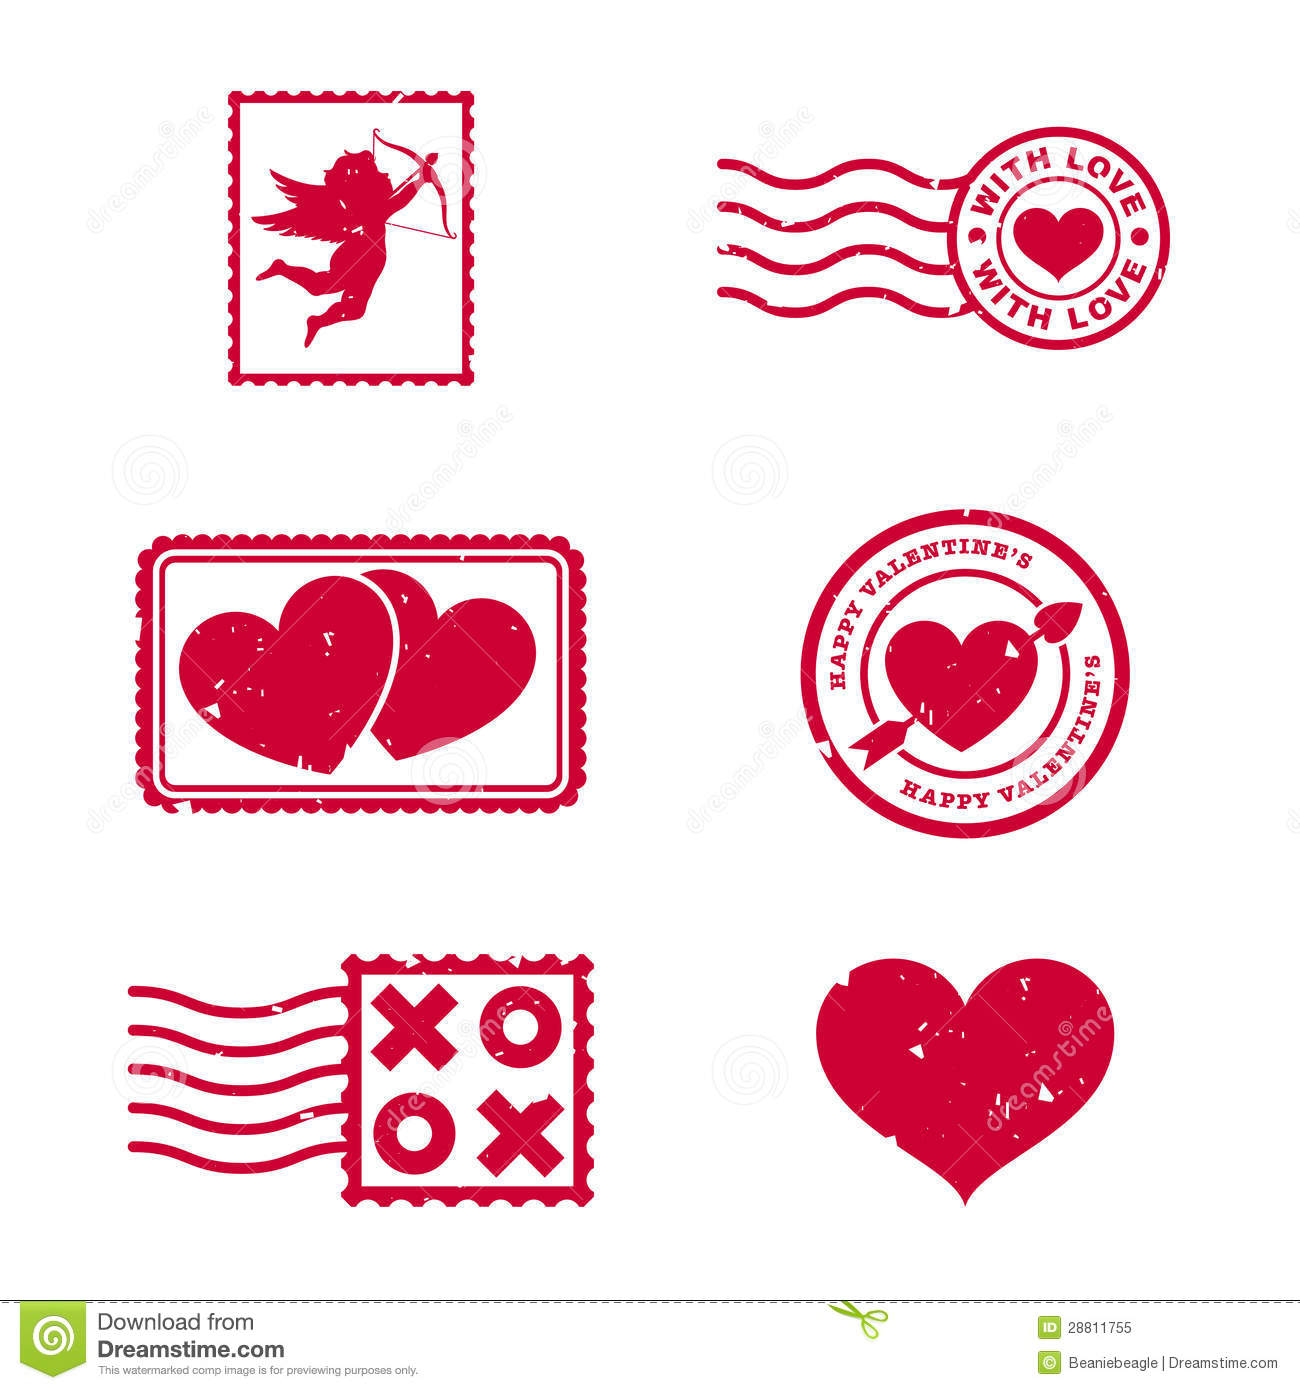 Valentines Day Stamps Royalty Free Stock Photo - Image: 28811755